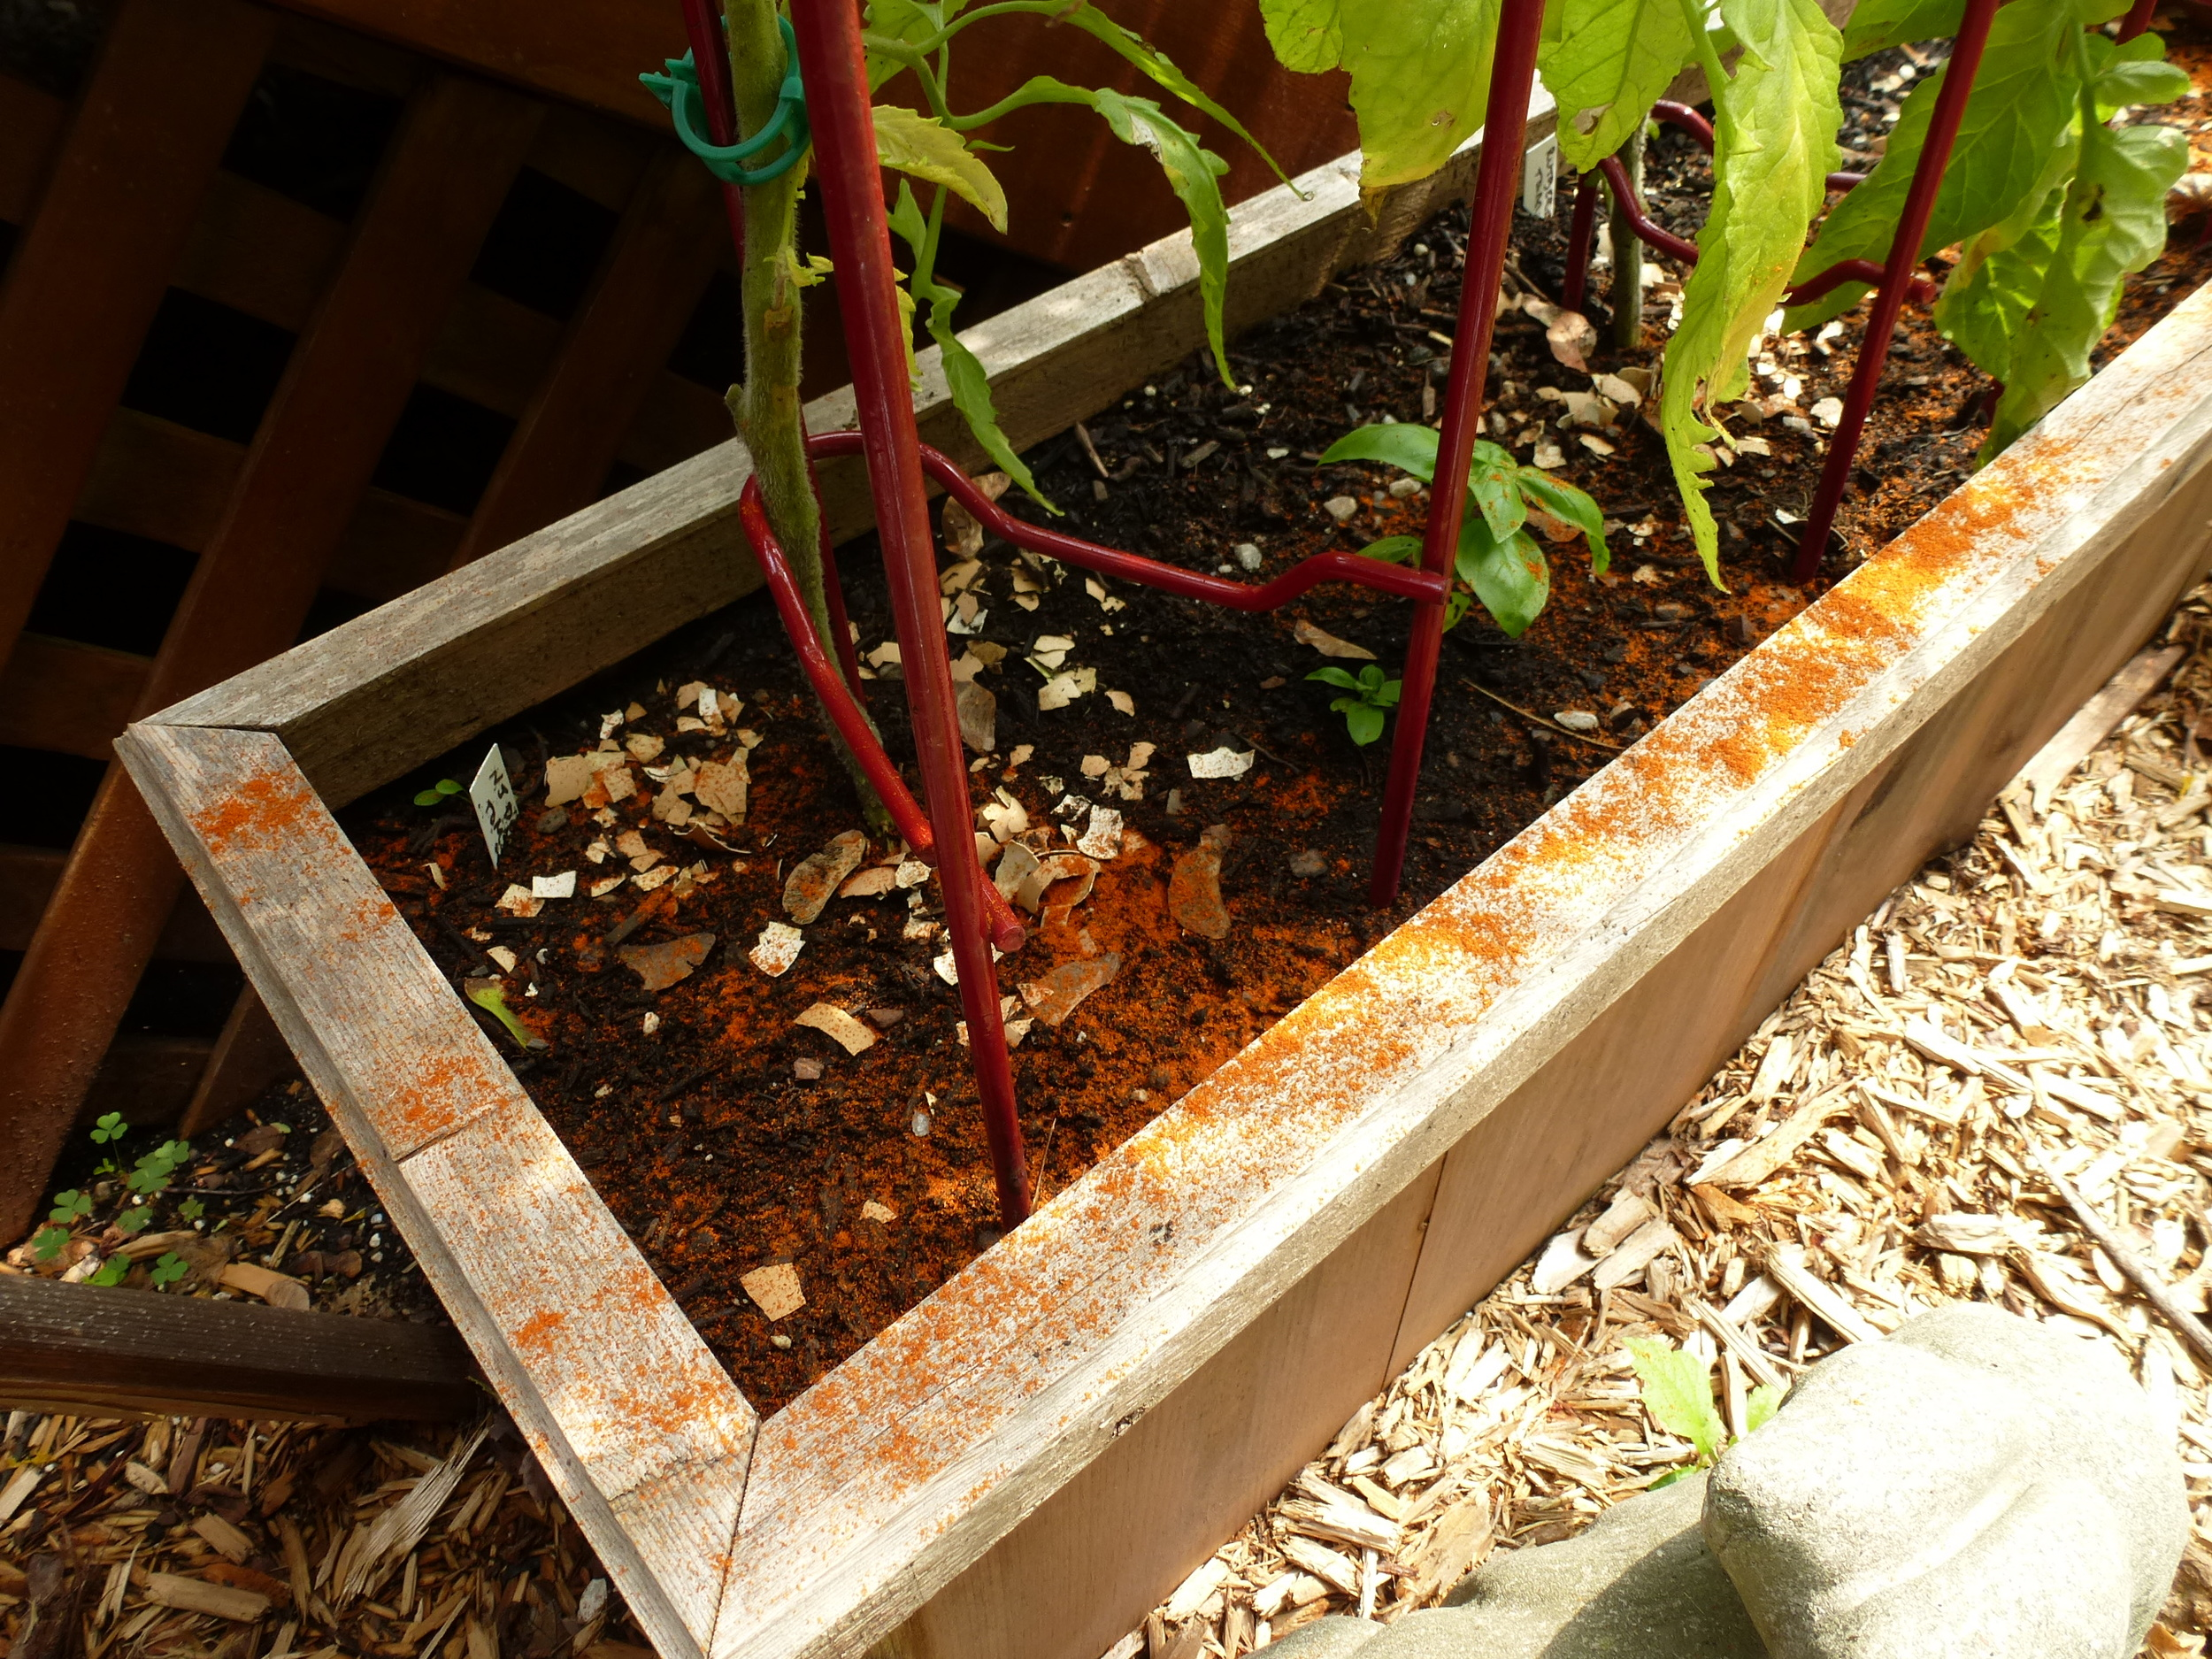 Sprinkled cayenne pepper around the plants